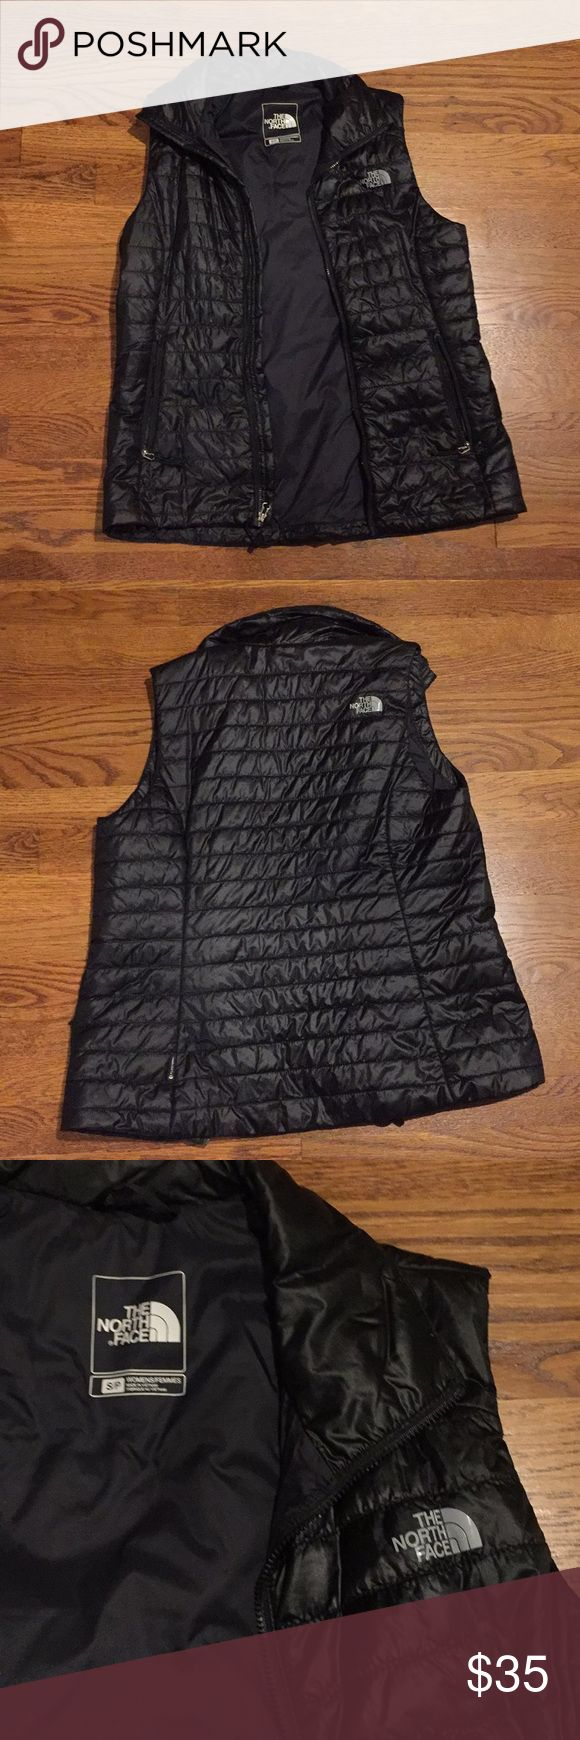 The North face fleece vest 100% nylon. black. size small. no flaws. The North Face Jackets & Coats Vests